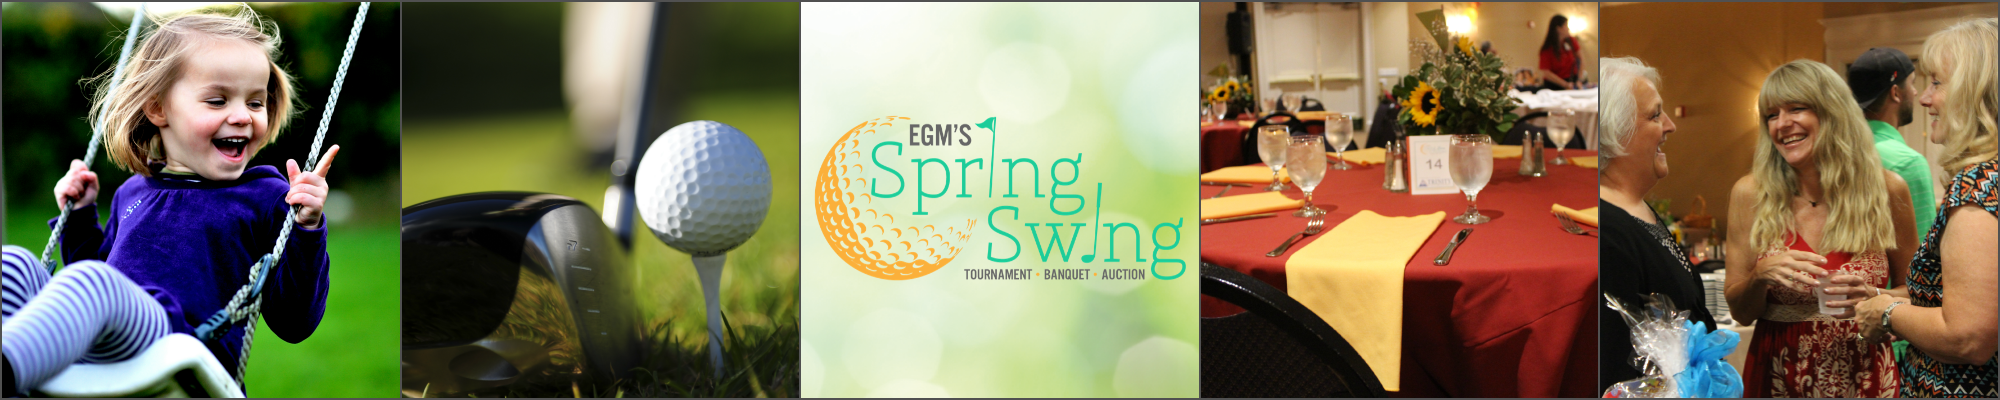 Spring Swing 2015 Home Slide